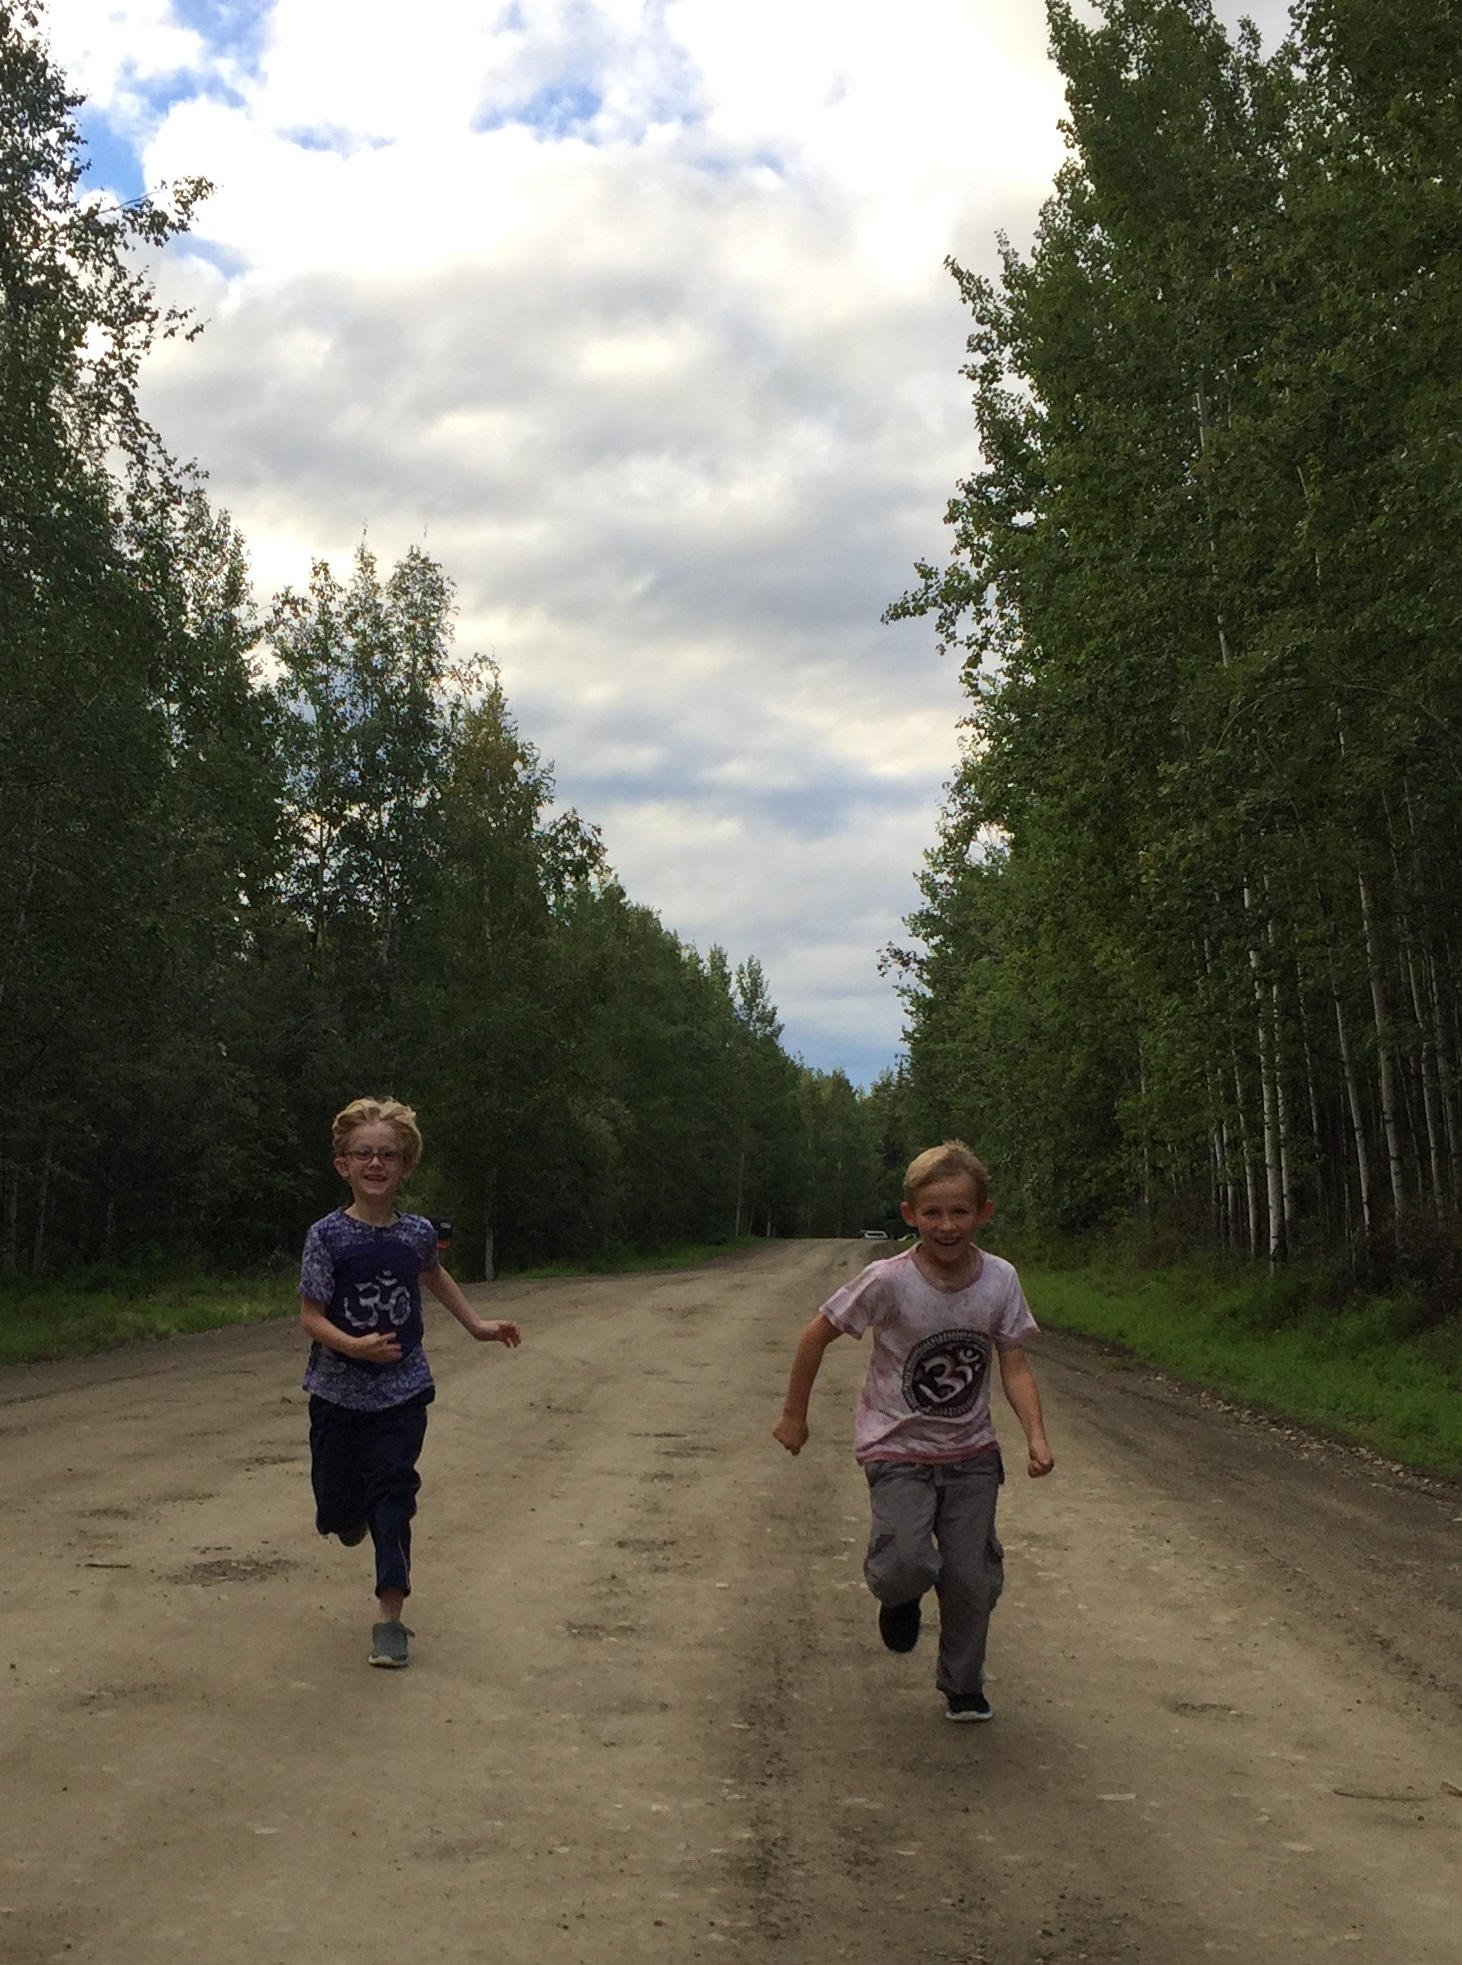 Caroline Brown's sons Galen and David running down a dirt road.